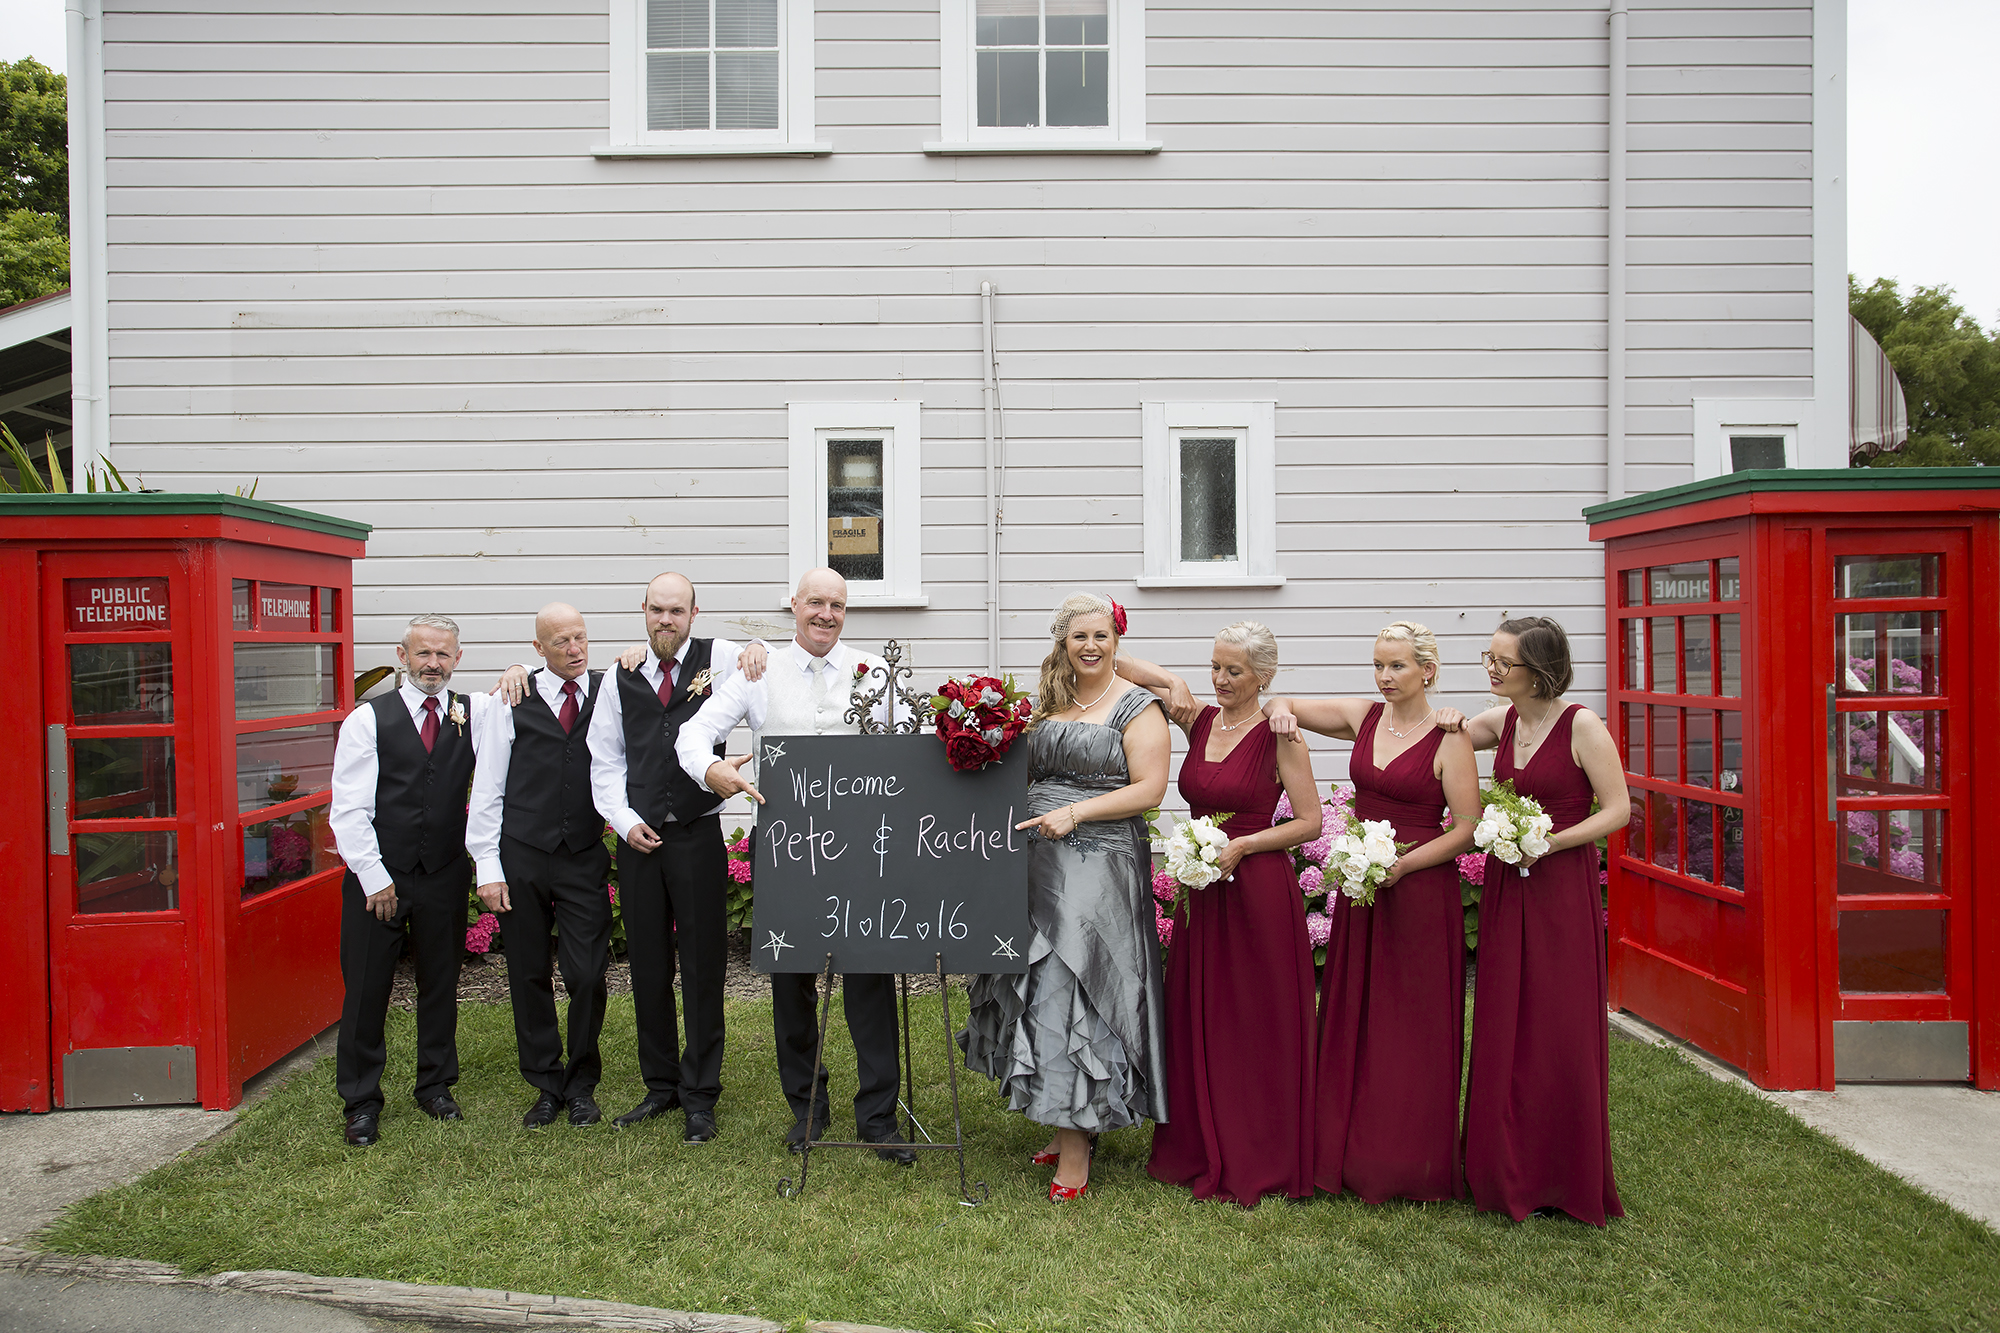 4 Bride and Groom Bridal Party119.jpg